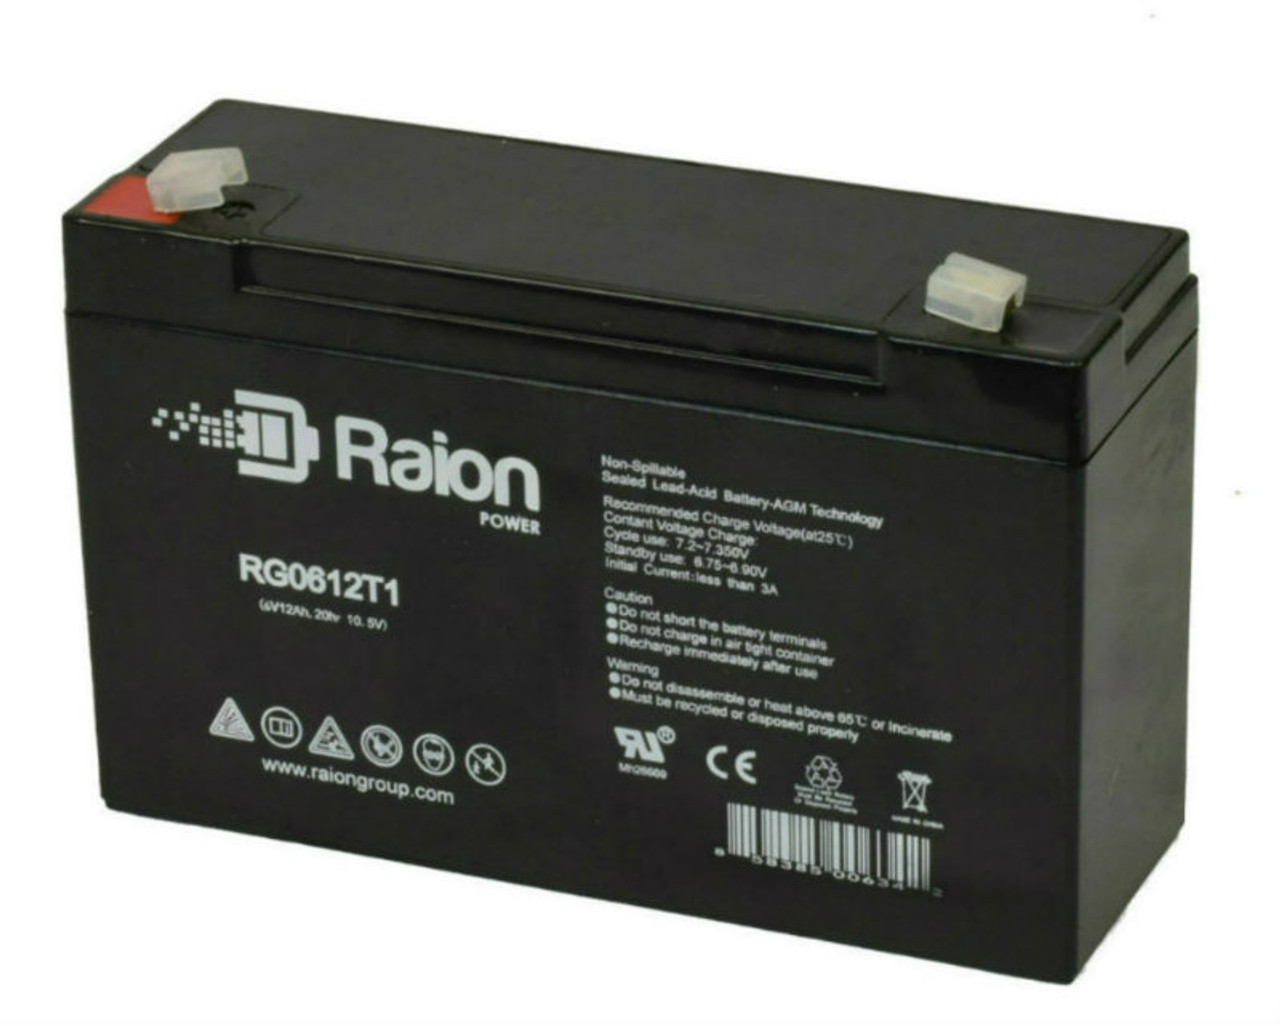 Raion Power RG06120T1 Replacement Battery Pack for Sure-Lites SL2630 emergency light